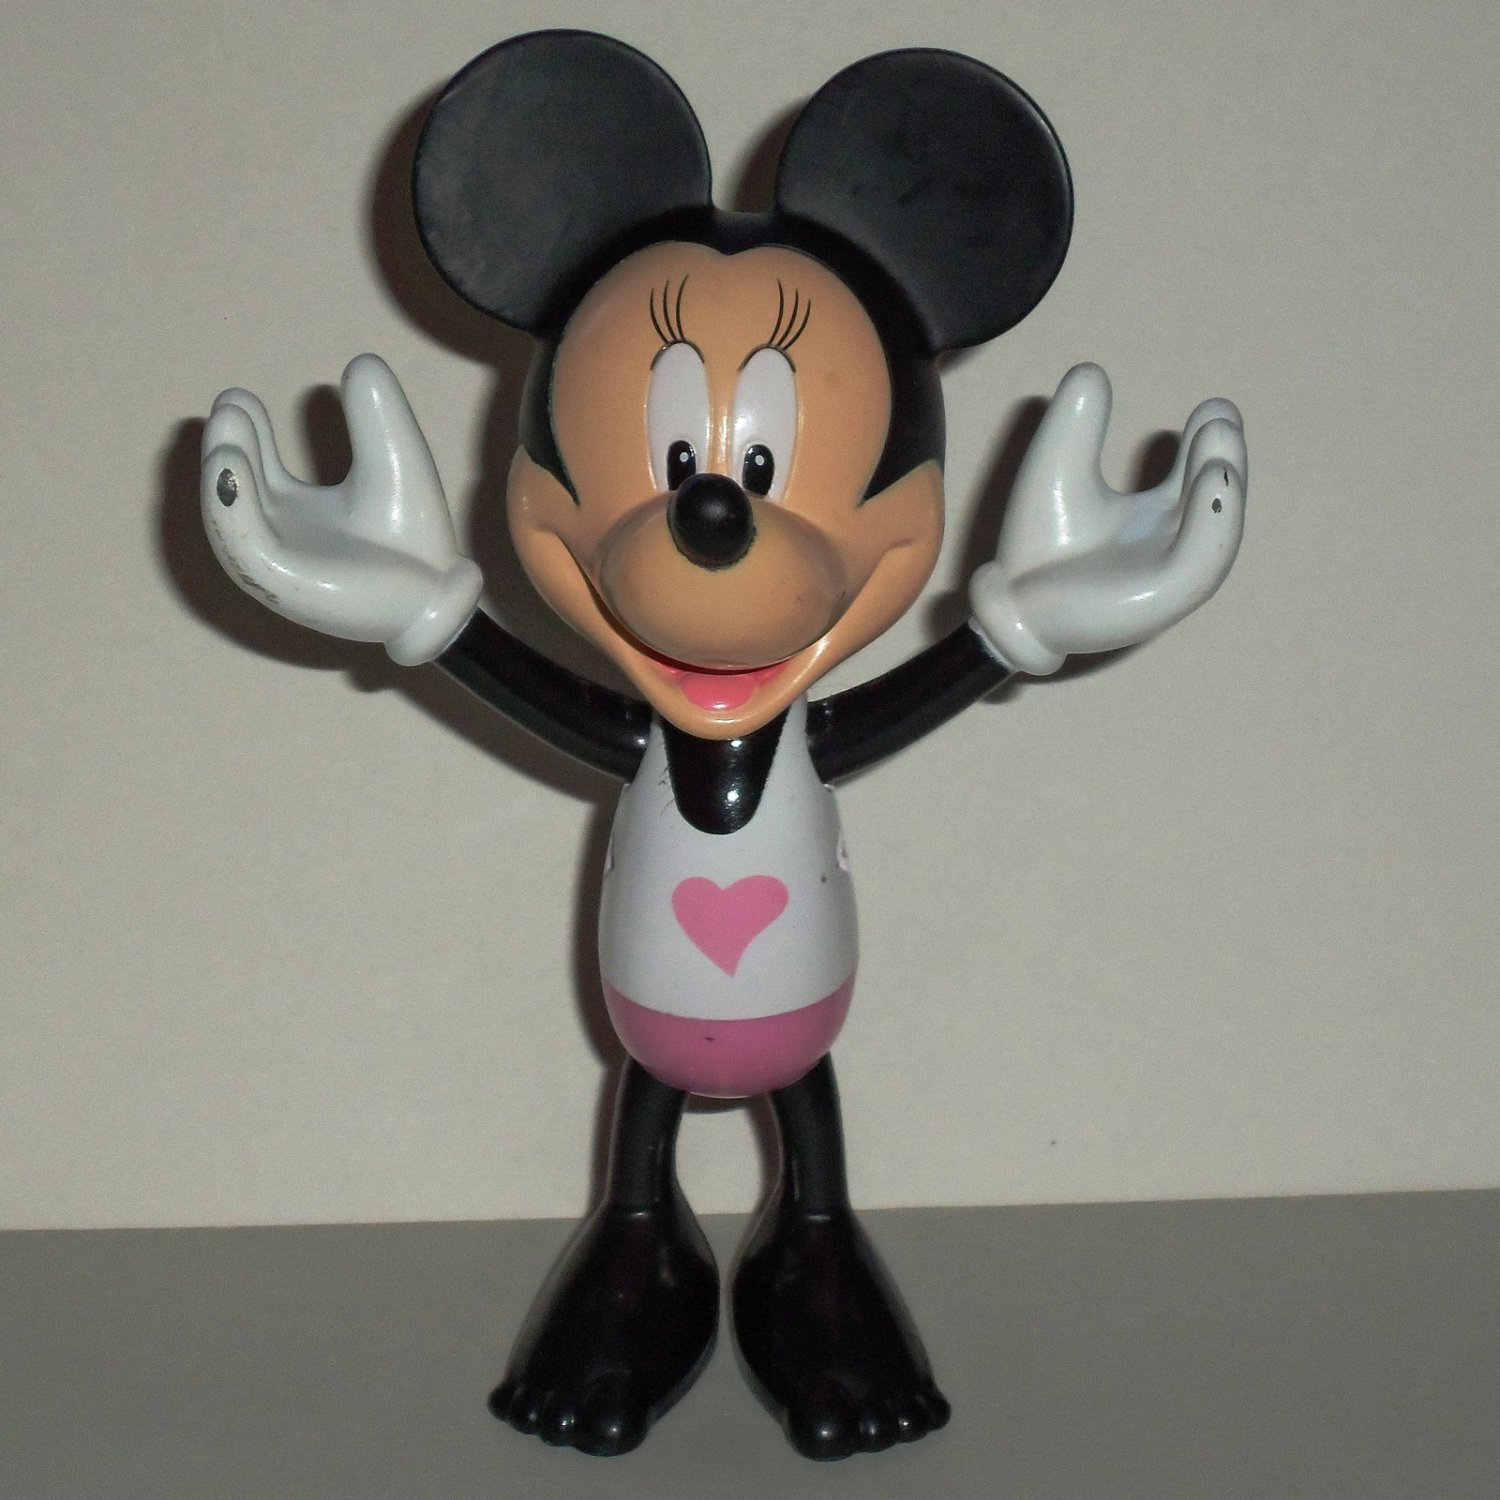 Fisher-Price Disney Minnie Mouse Figure from V4134 Minnie's Beach Bow-Tique Playset Loose Used